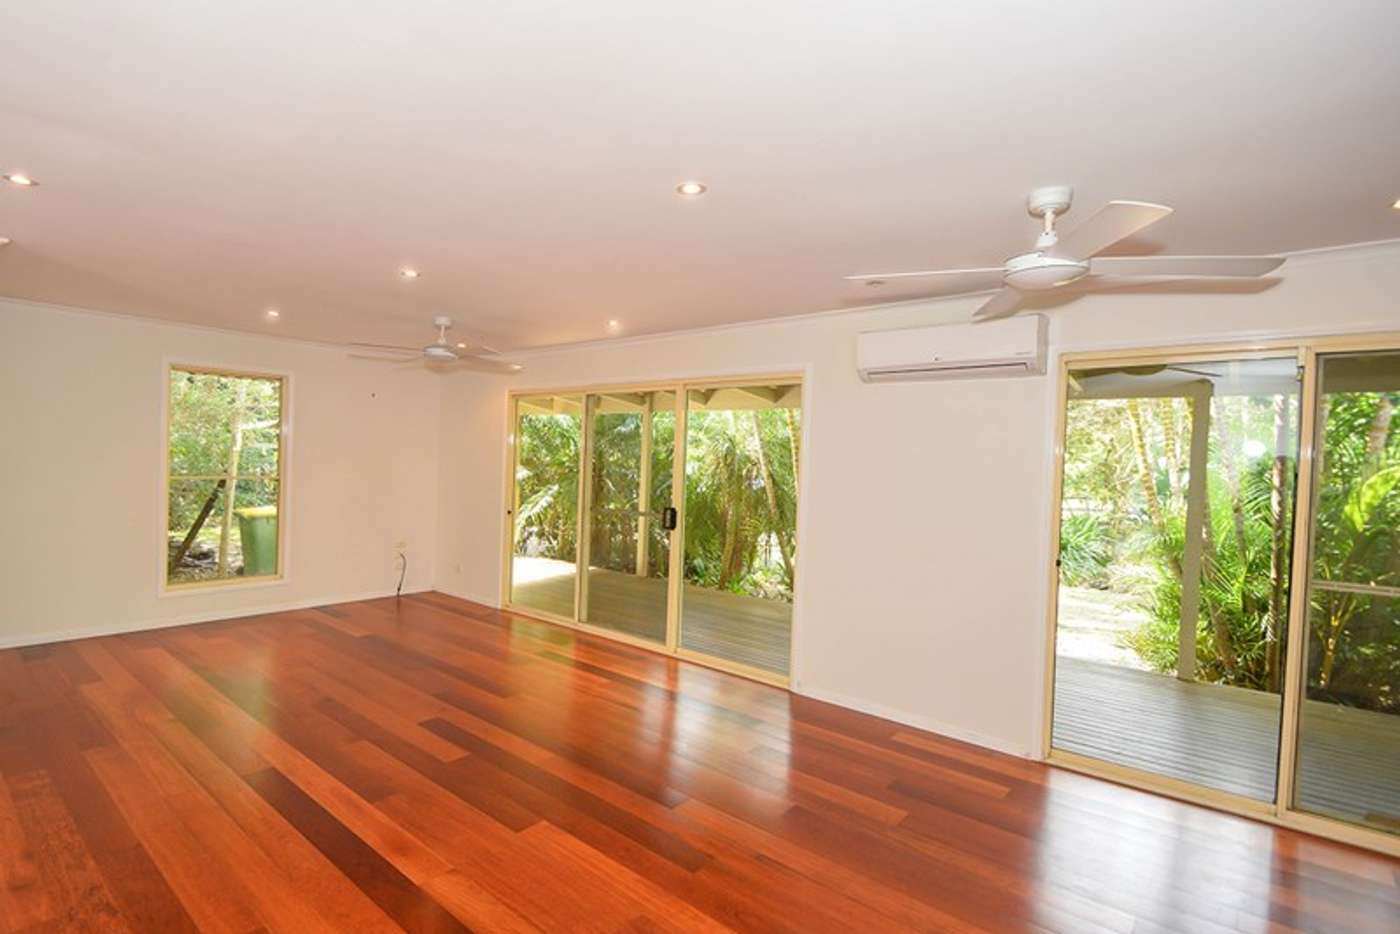 Sixth view of Homely house listing, 160 Nandroya Road, Cooroy QLD 4563